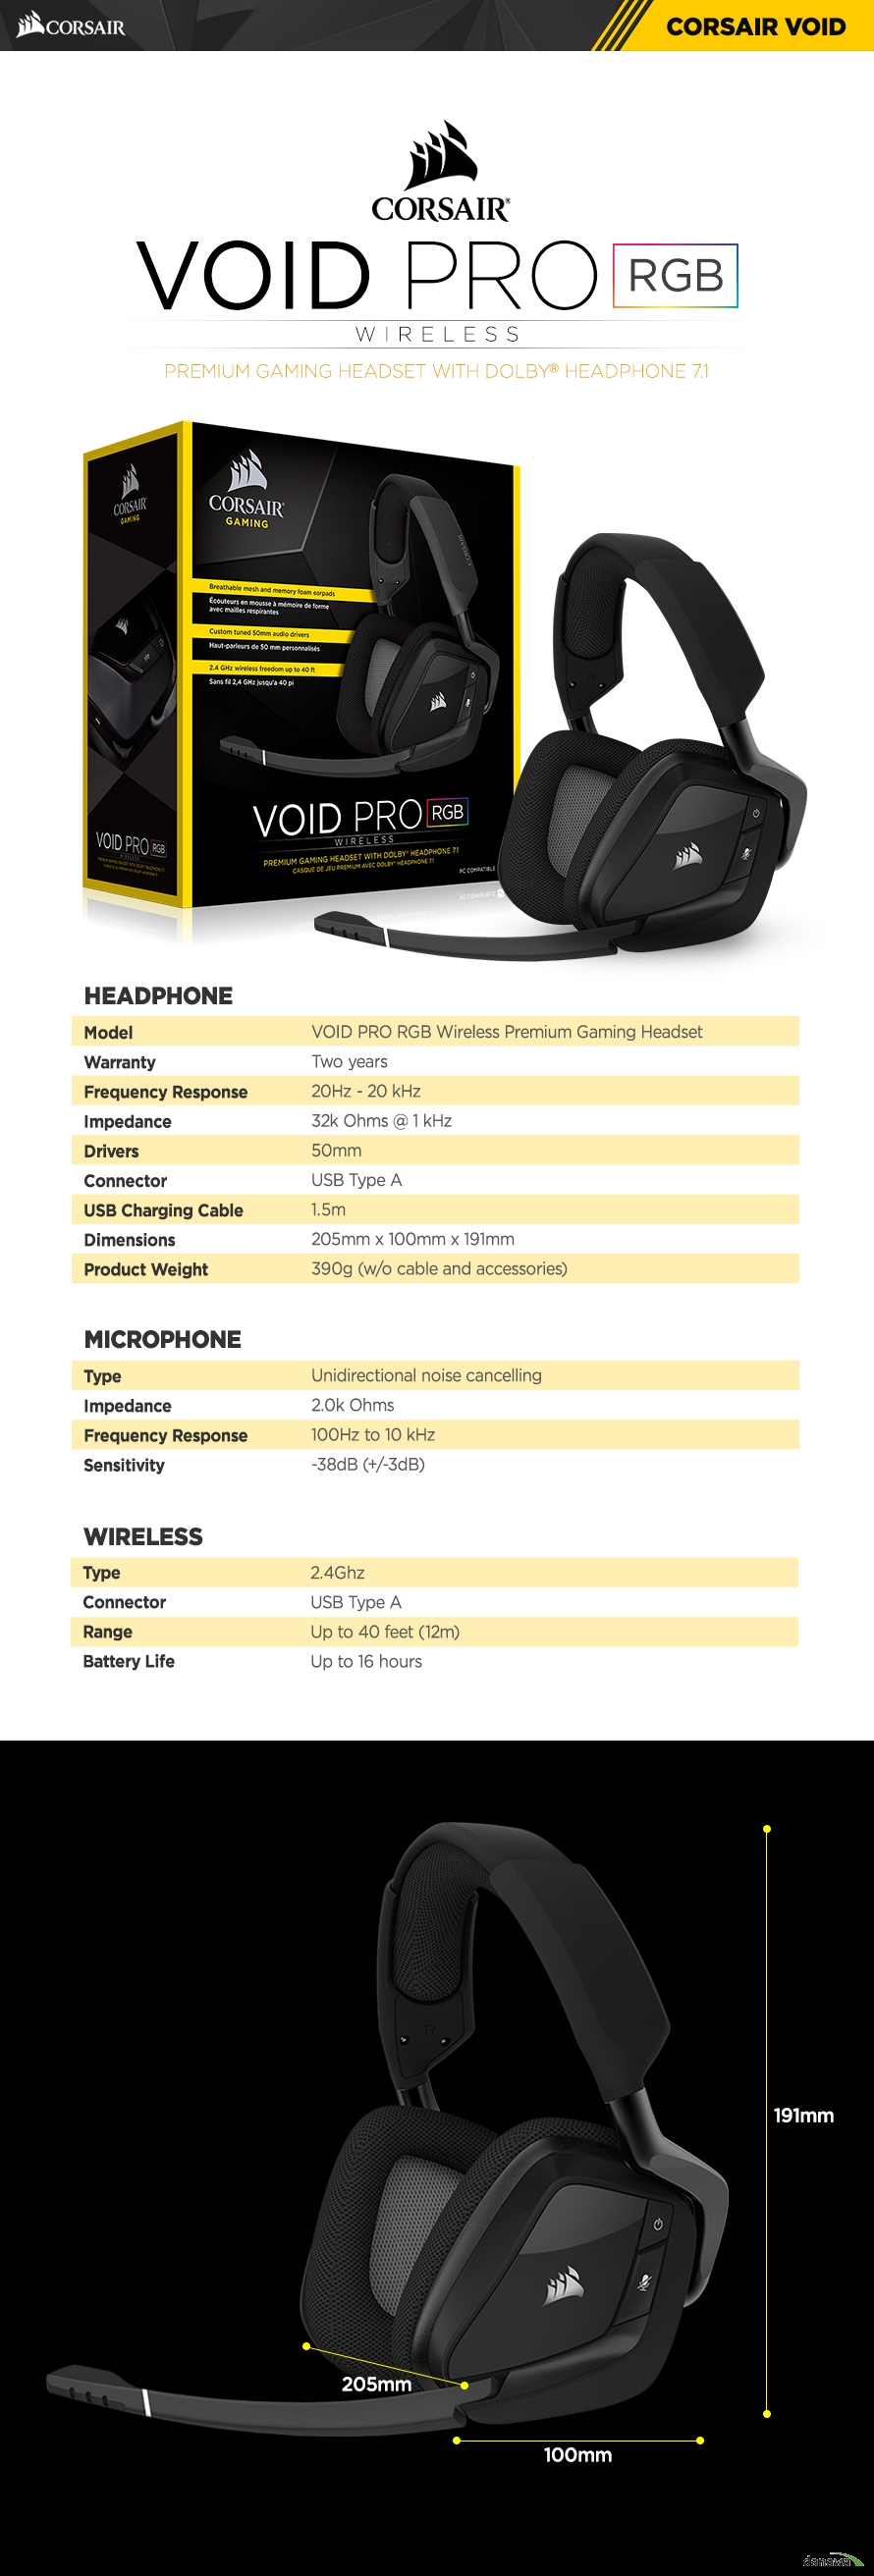 HEADPHONE	Model	VOID PRO RGB Wireless Premium Gaming HeadsetWarranty	Two yearsFrequency Response	20Hz - 20 kHzImpedance	32k Ohms @ 1 kHzDrivers	50mmConnector	USB Type AUSB Charging Cable	1.5mDimensions	205mm x 100mm x 191mmProduct Weight	390g (w/o cable and accessories)	MICROPHONE	Type	Unidirectional noise cancellingImpedance	2.0k OhmsFrequency Response	100Hz to 10 kHzSensitivity	-38dB (+/-3dB)	Wireless	Type	2.4GhzConnector	USB Type ARange	Up to 40 feet (12m)Battery Life	Up to 16 hours